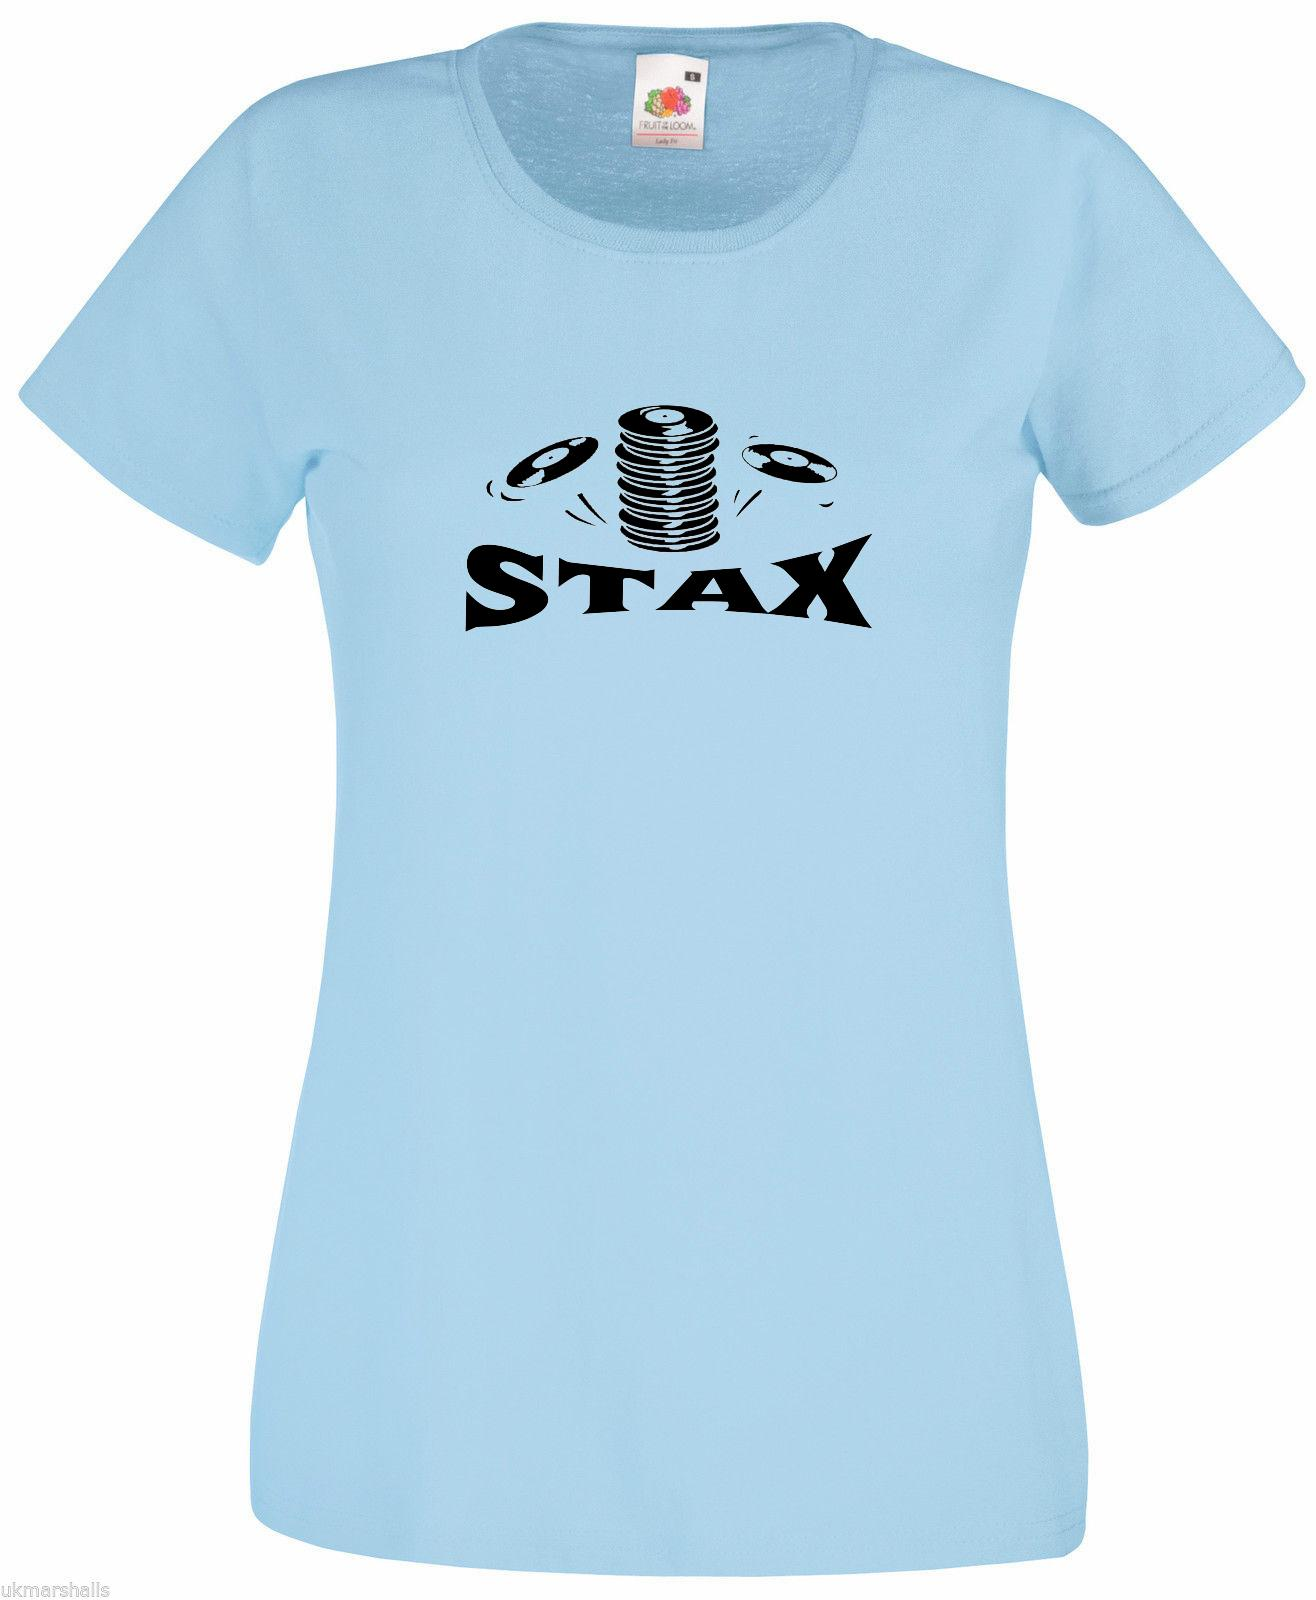 Ladies Stax T-shirt